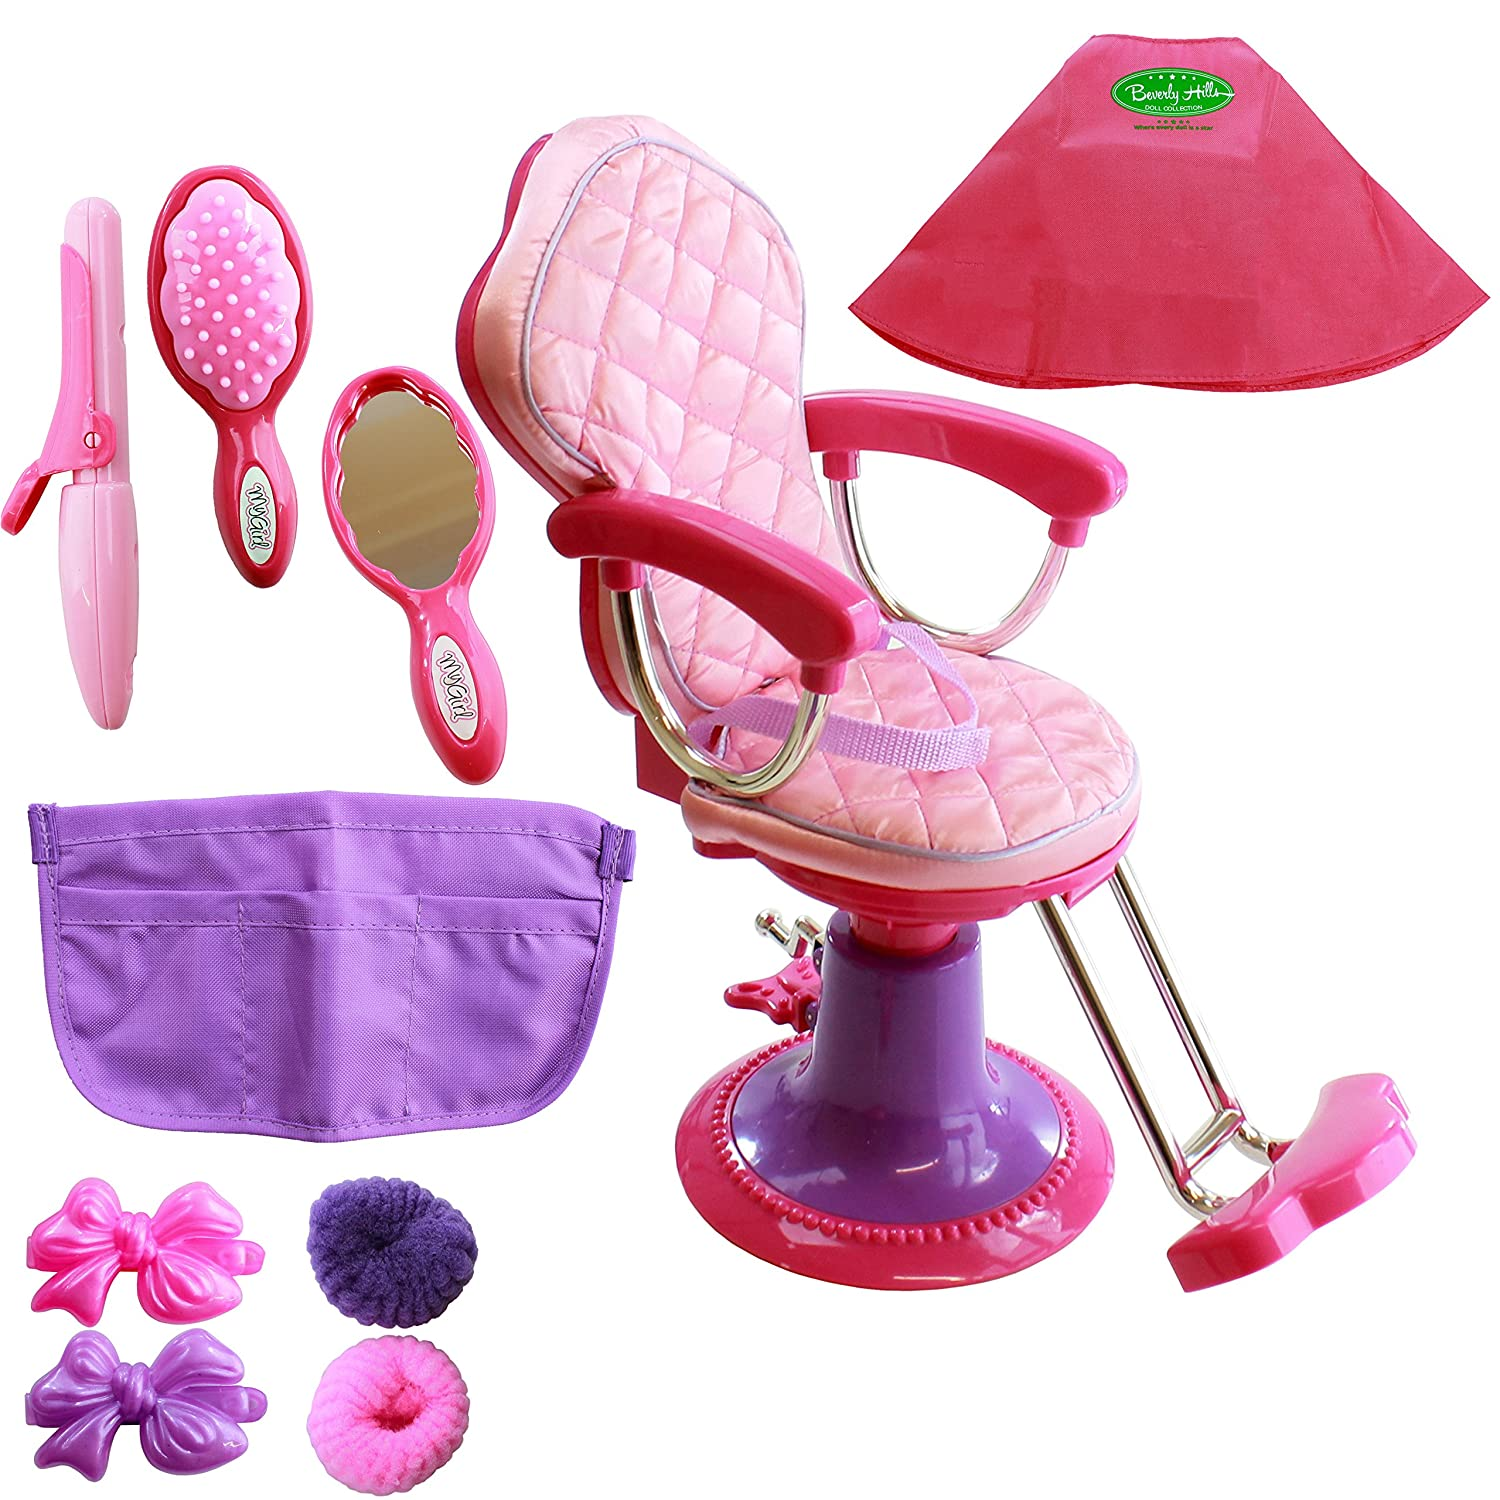 Beverly Hills Doll Collection Salon Chair for 18 Inch American Girl Dolls Fully Assembled with 8 Hair Cutting Accessories